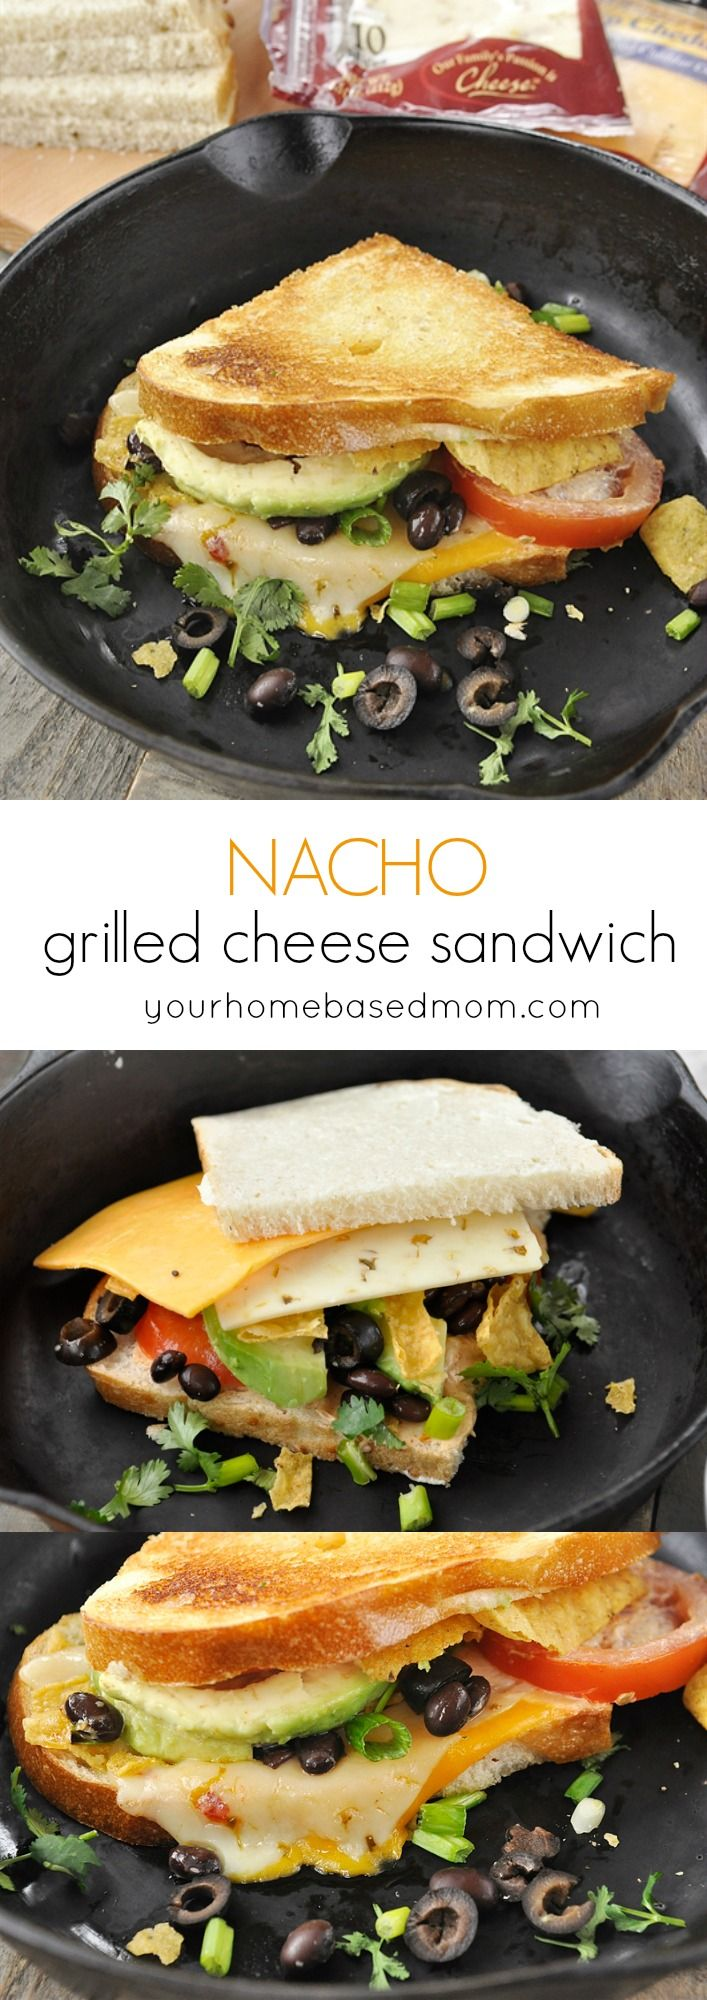 Nacho Grilled Cheese Sandwiches Recipe - perfect for tailgating, game day, family night or any time!